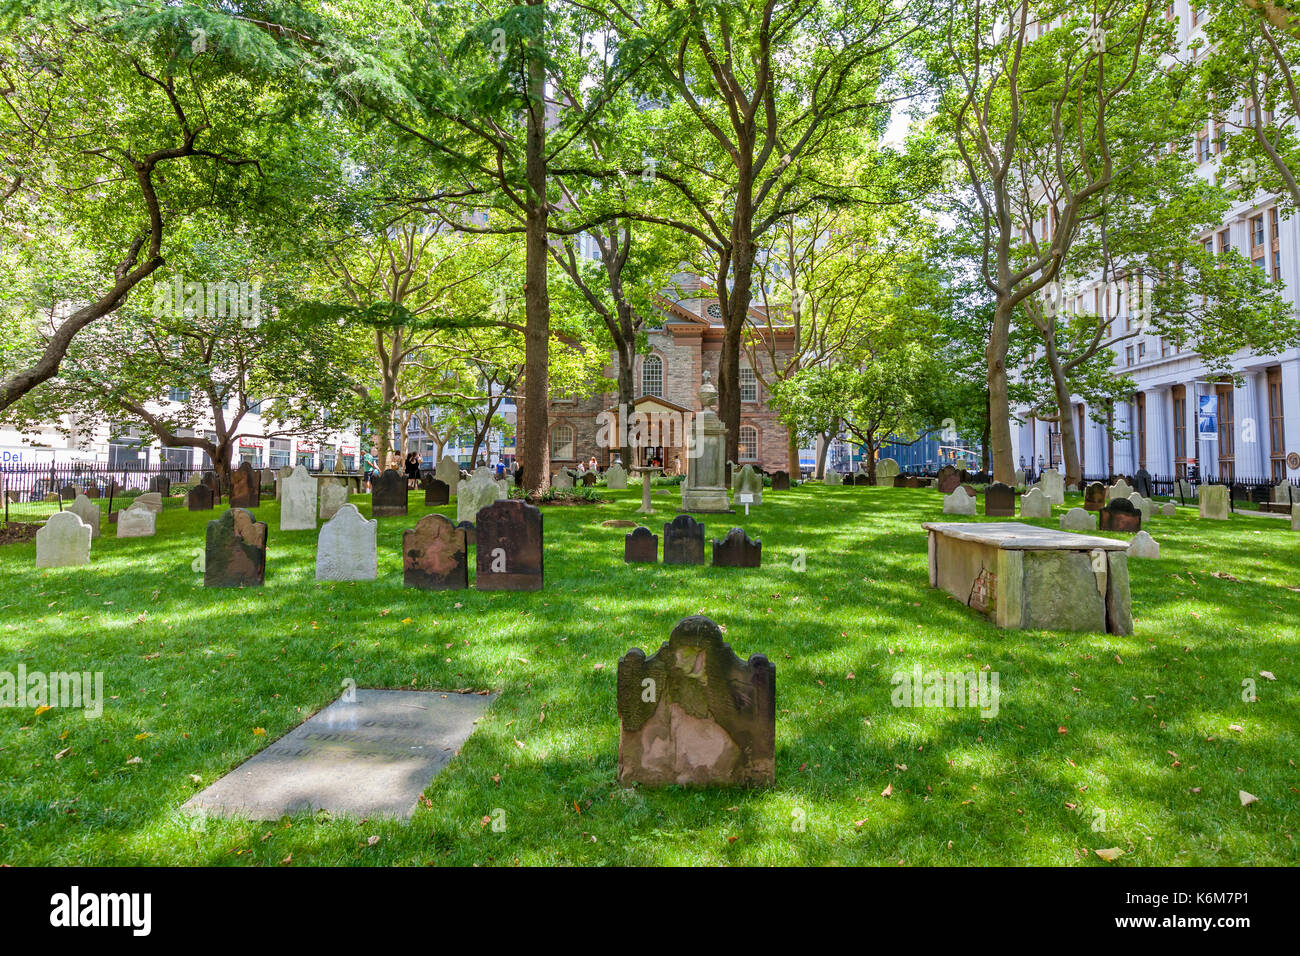 The graveyard, cemetery, behind St. Paul's Churchyard near the Freedom Tower with headstones from the 1700's. - Stock Image